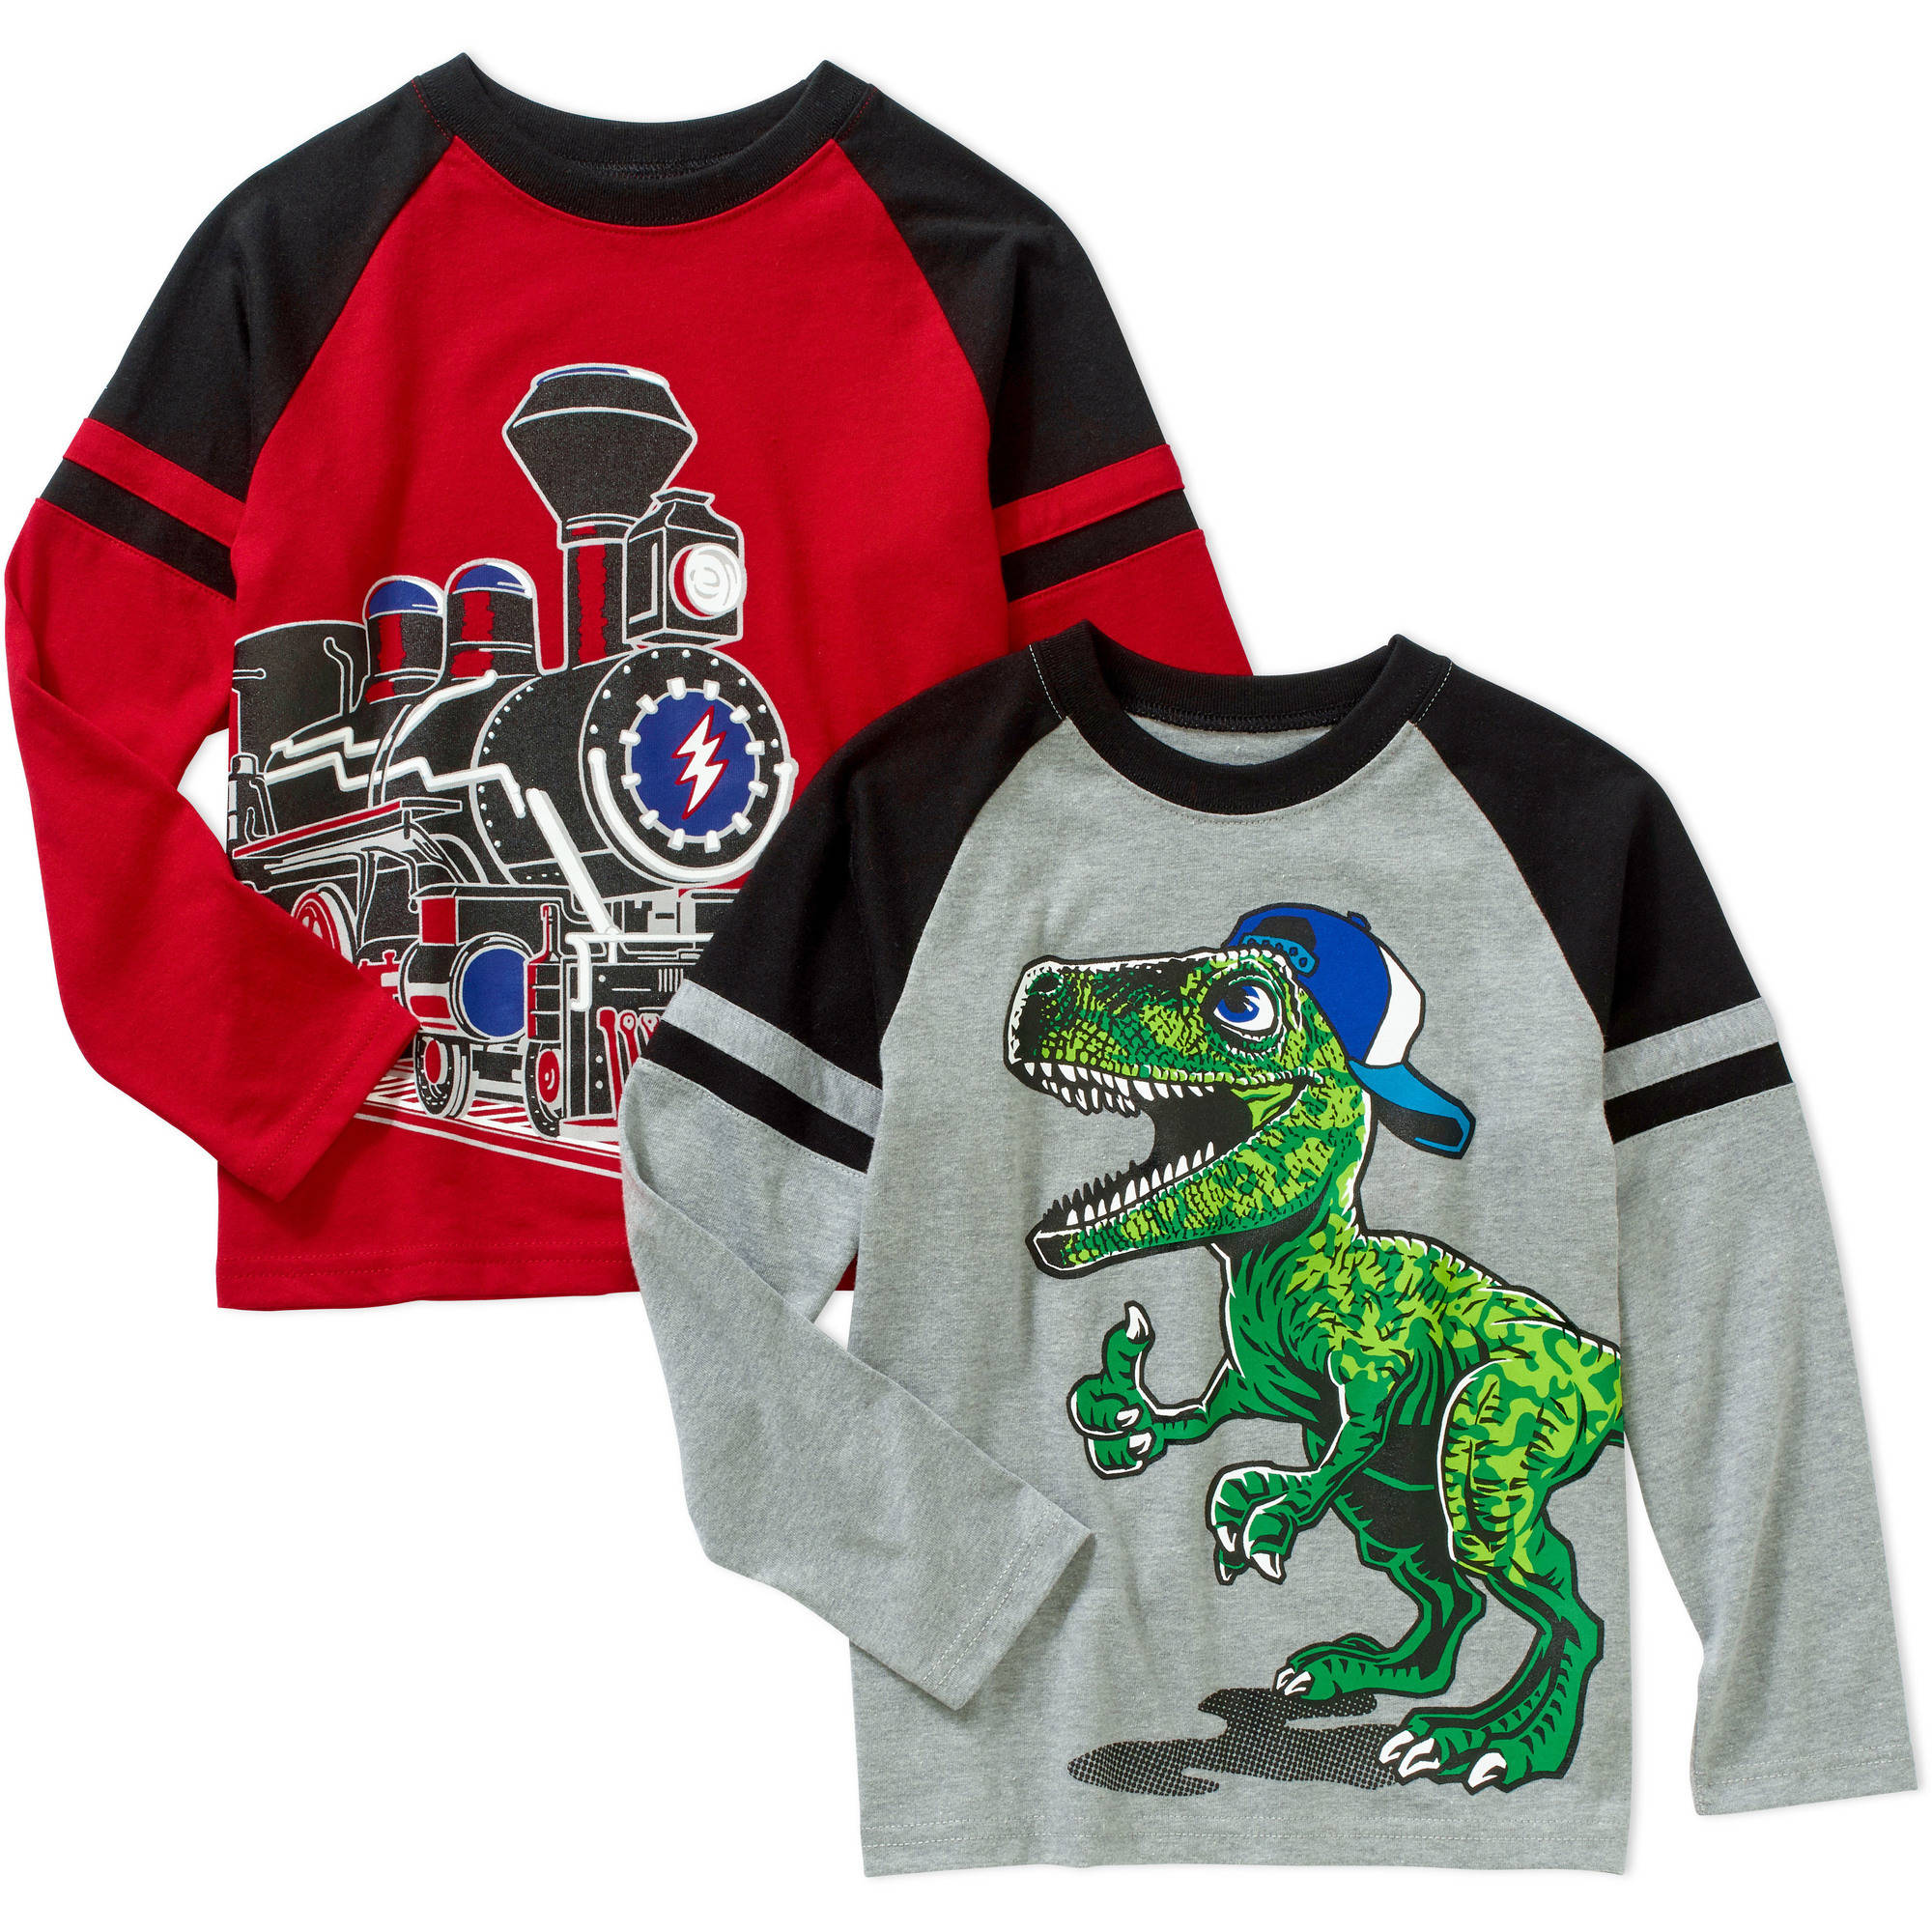 Image of 365 Kids from Garanimals Boys' 2-Piece Long Sleeve Graphic Raglan Tee Set